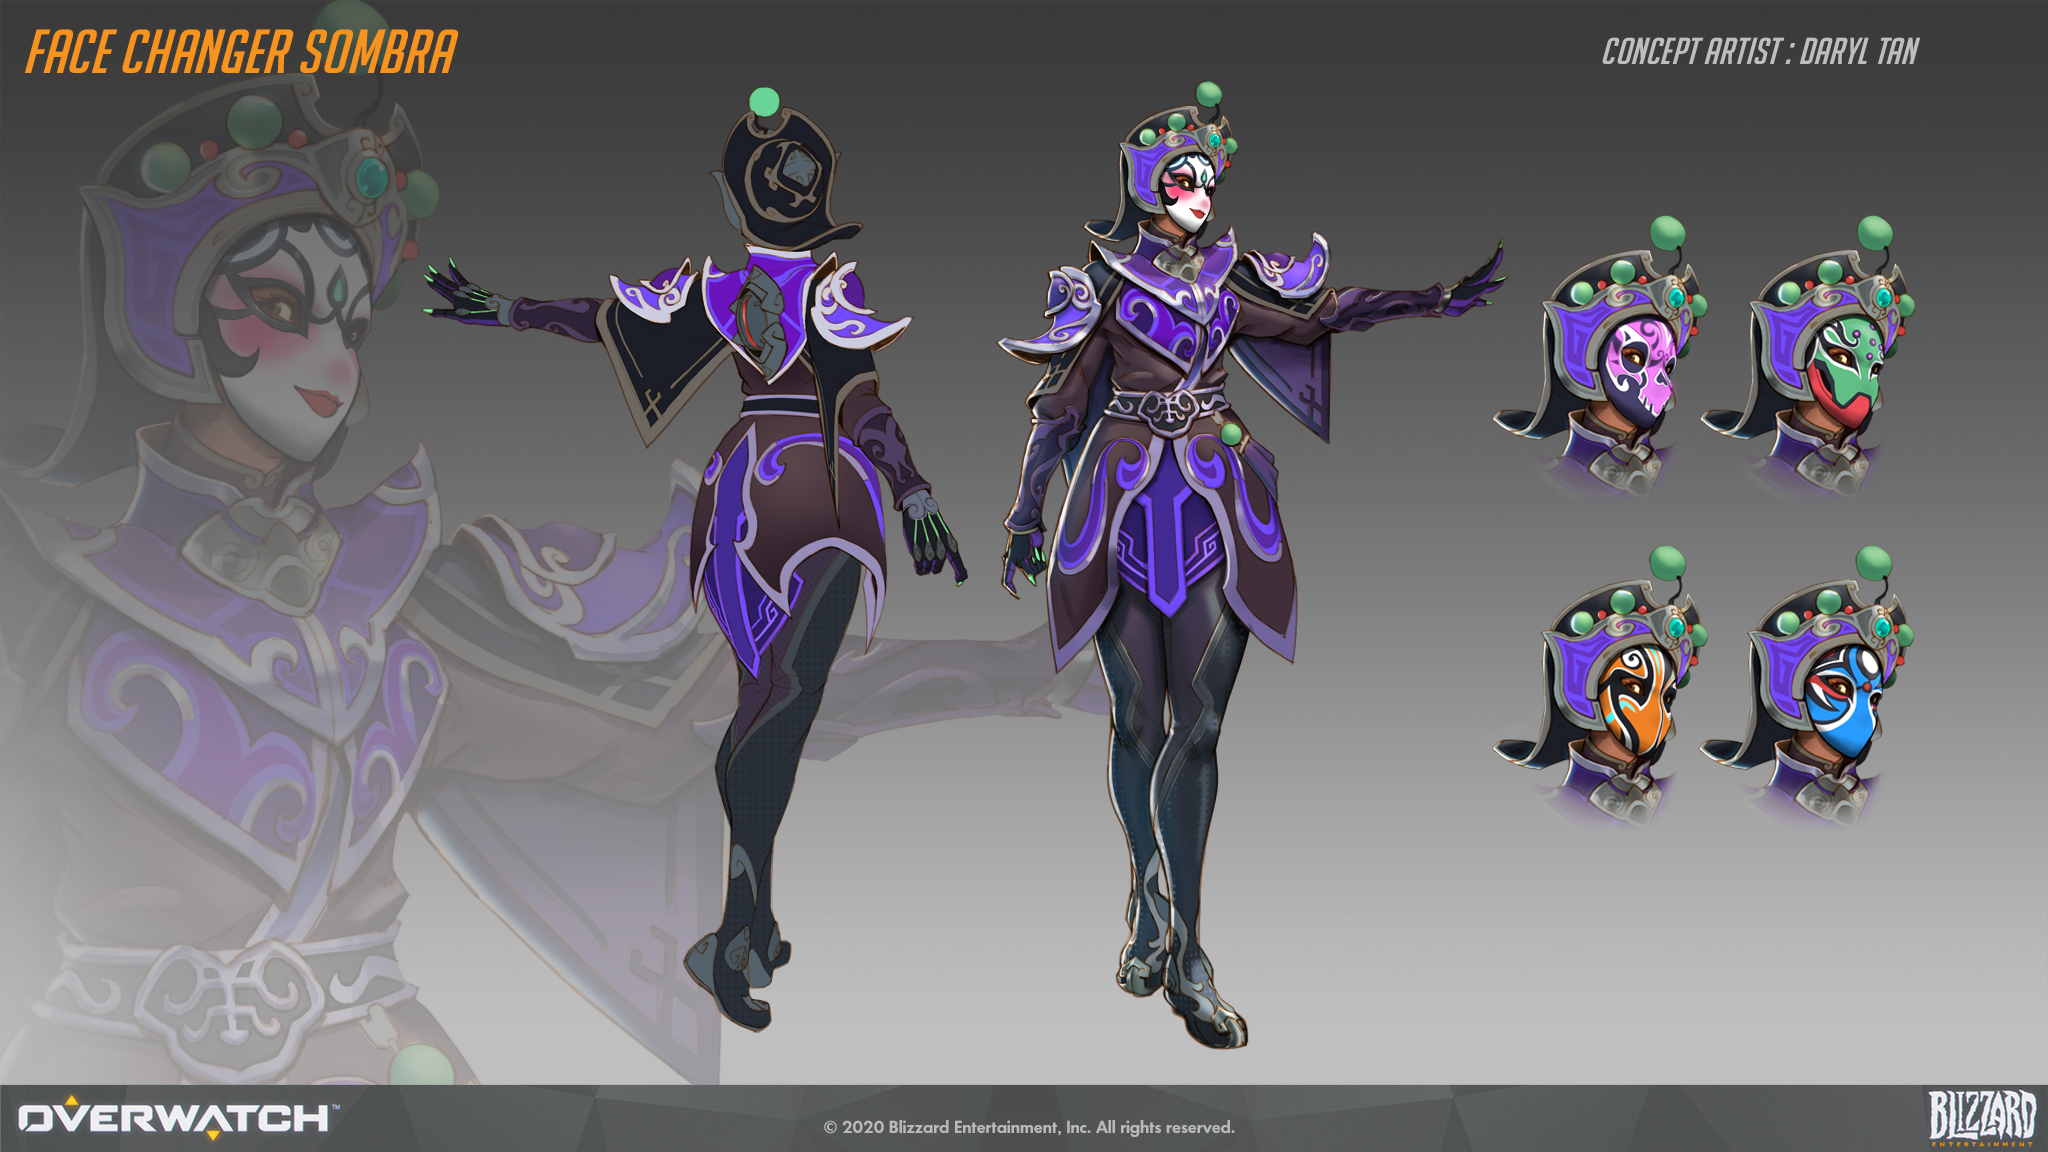 Face Changer Sombra Concept Art for Overwatch